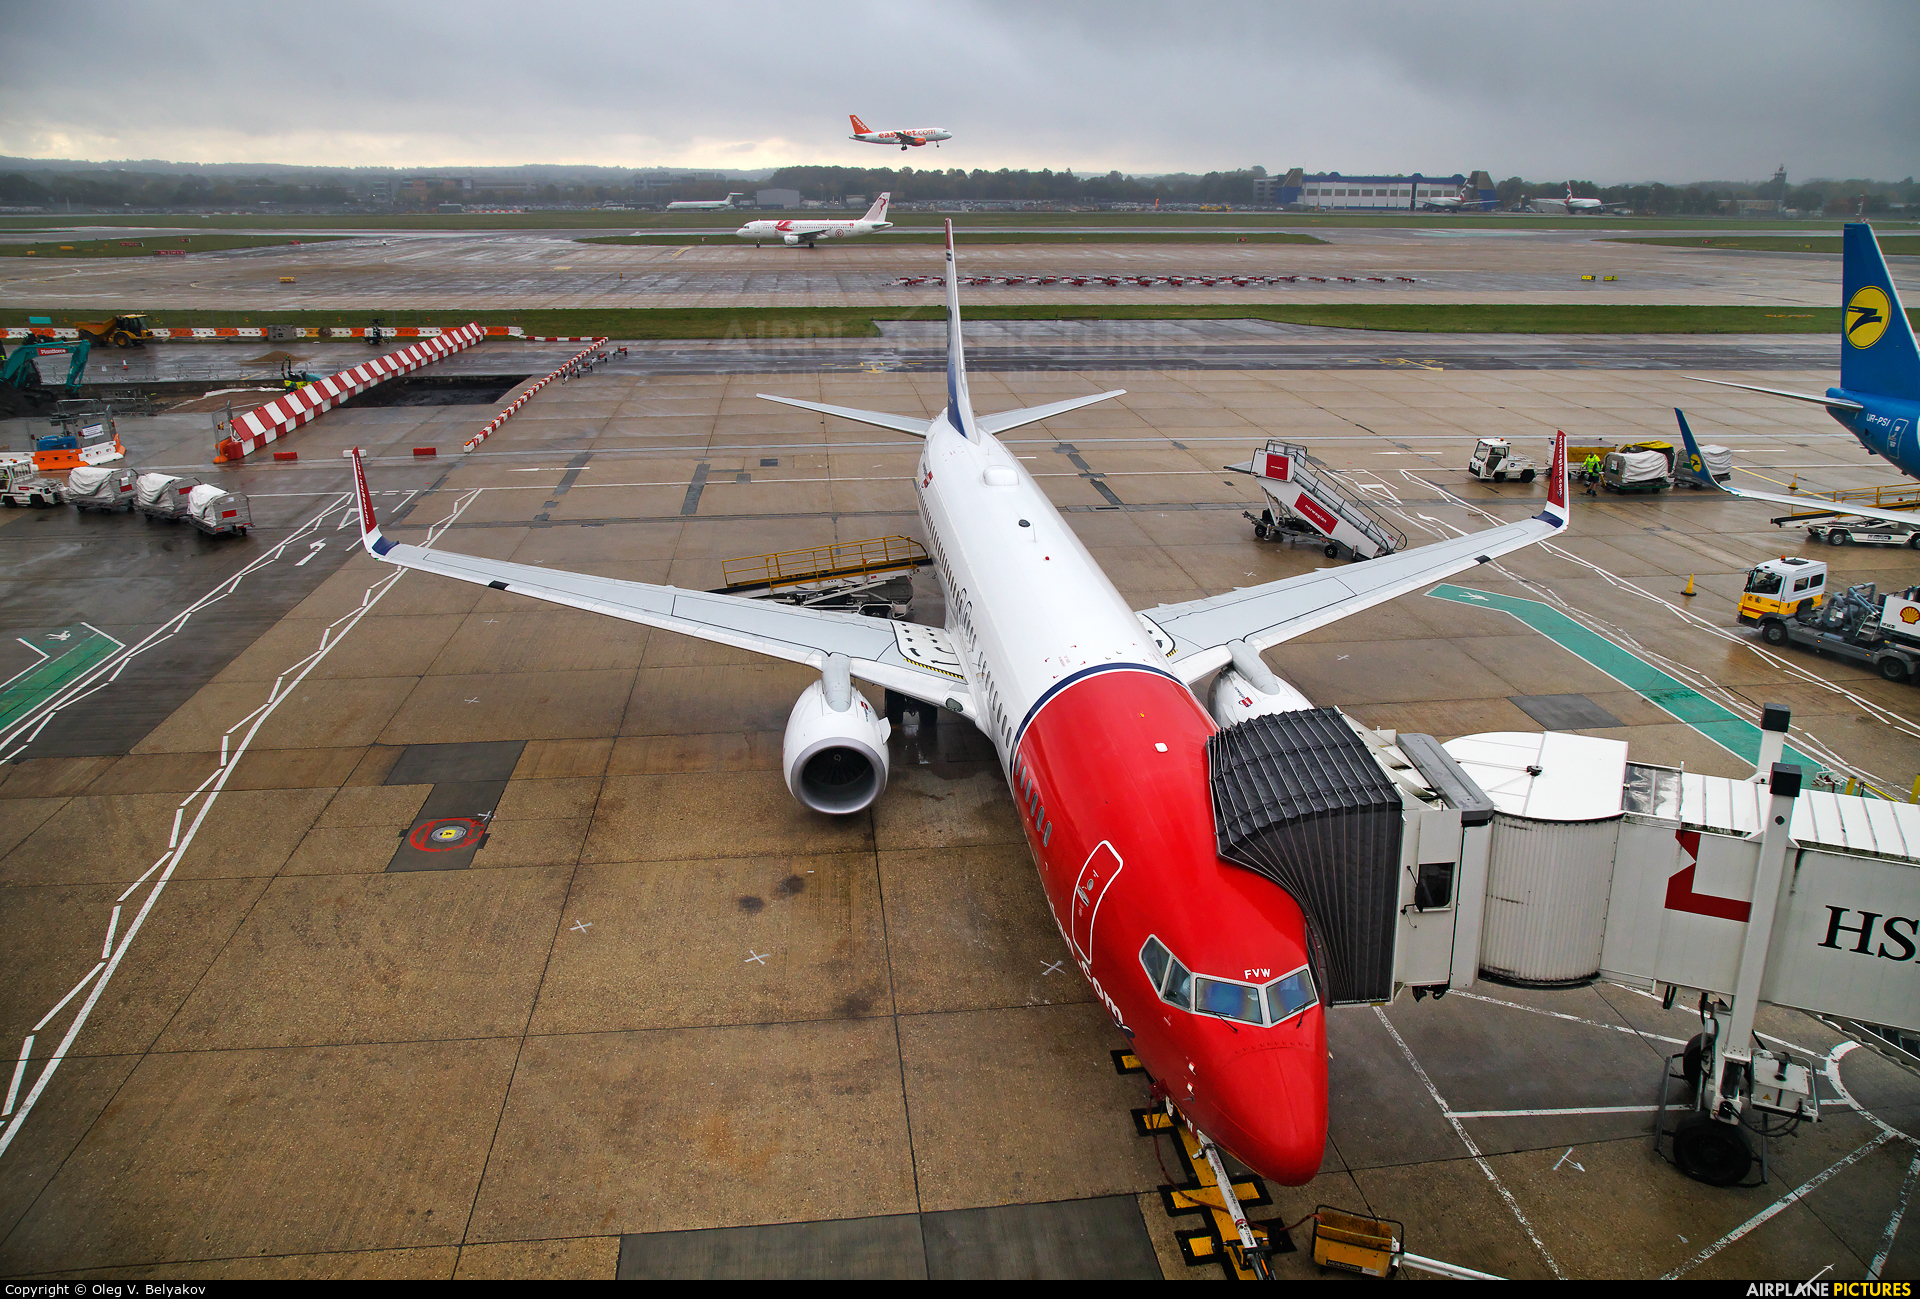 Norwegian Air International EI-FVW aircraft at London - Gatwick